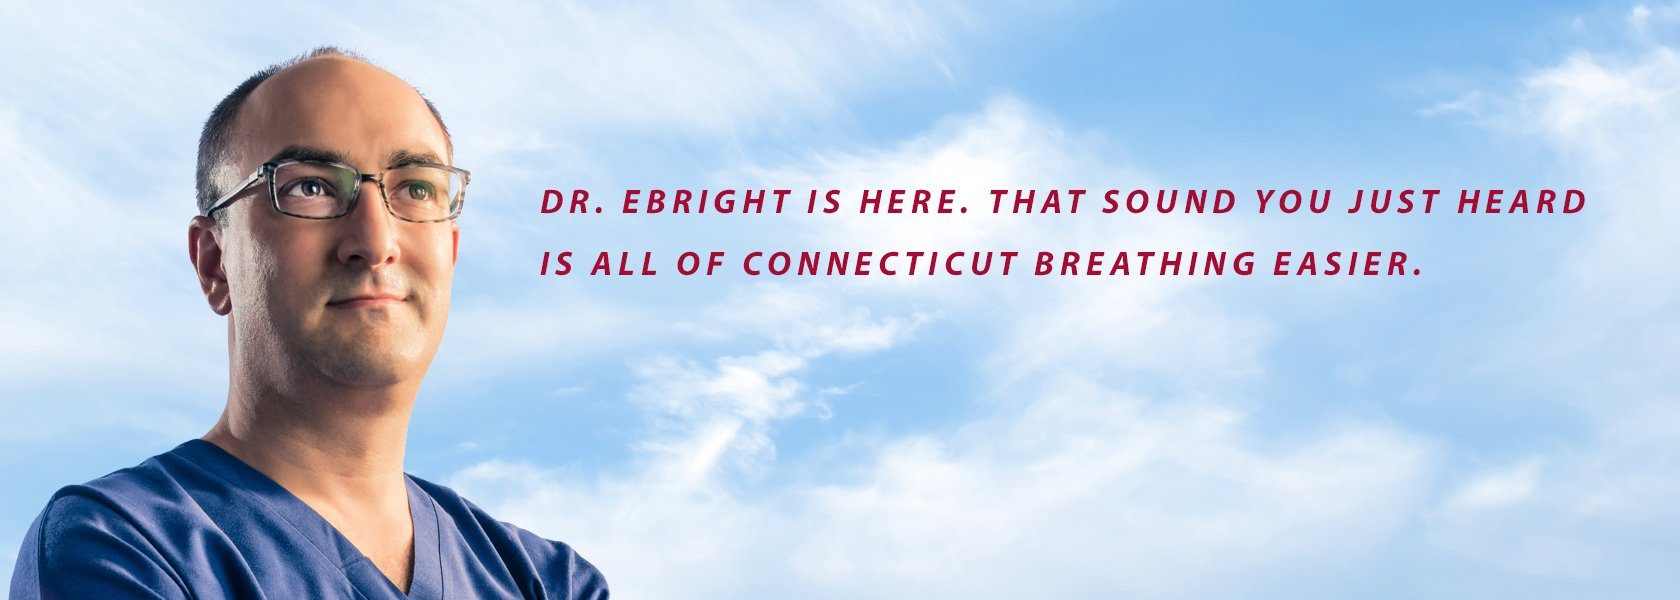 Dr. Ebright is here. That sound you just heard is all of Connecticut breathing easier.